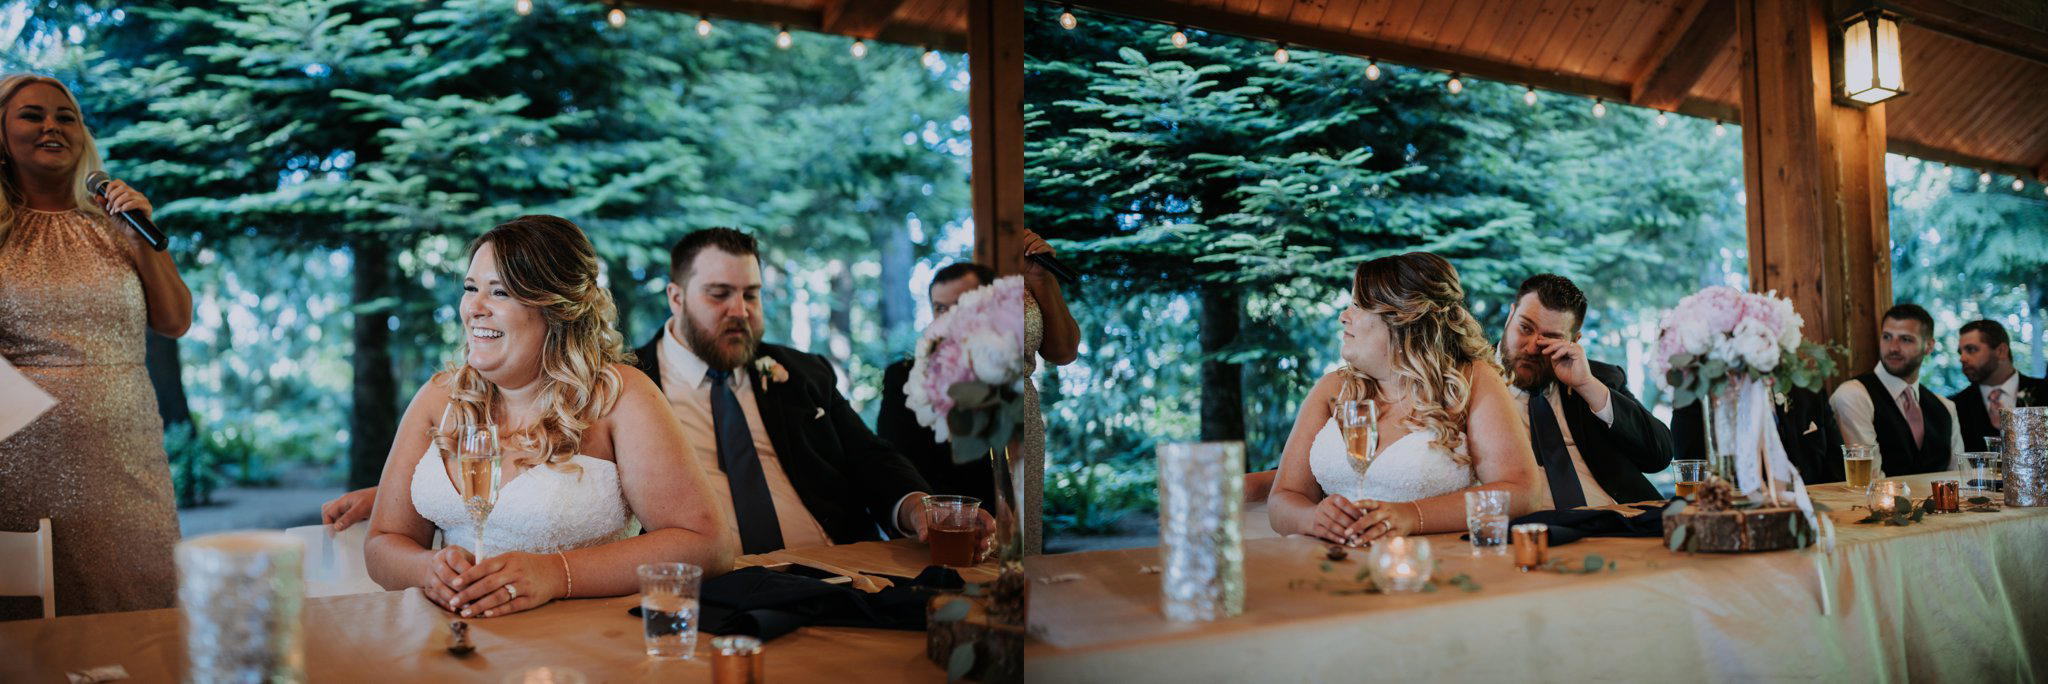 evergreen-gardens-bellingham-wedding-seattle-photographer-caitlyn-nikula-90.jpg